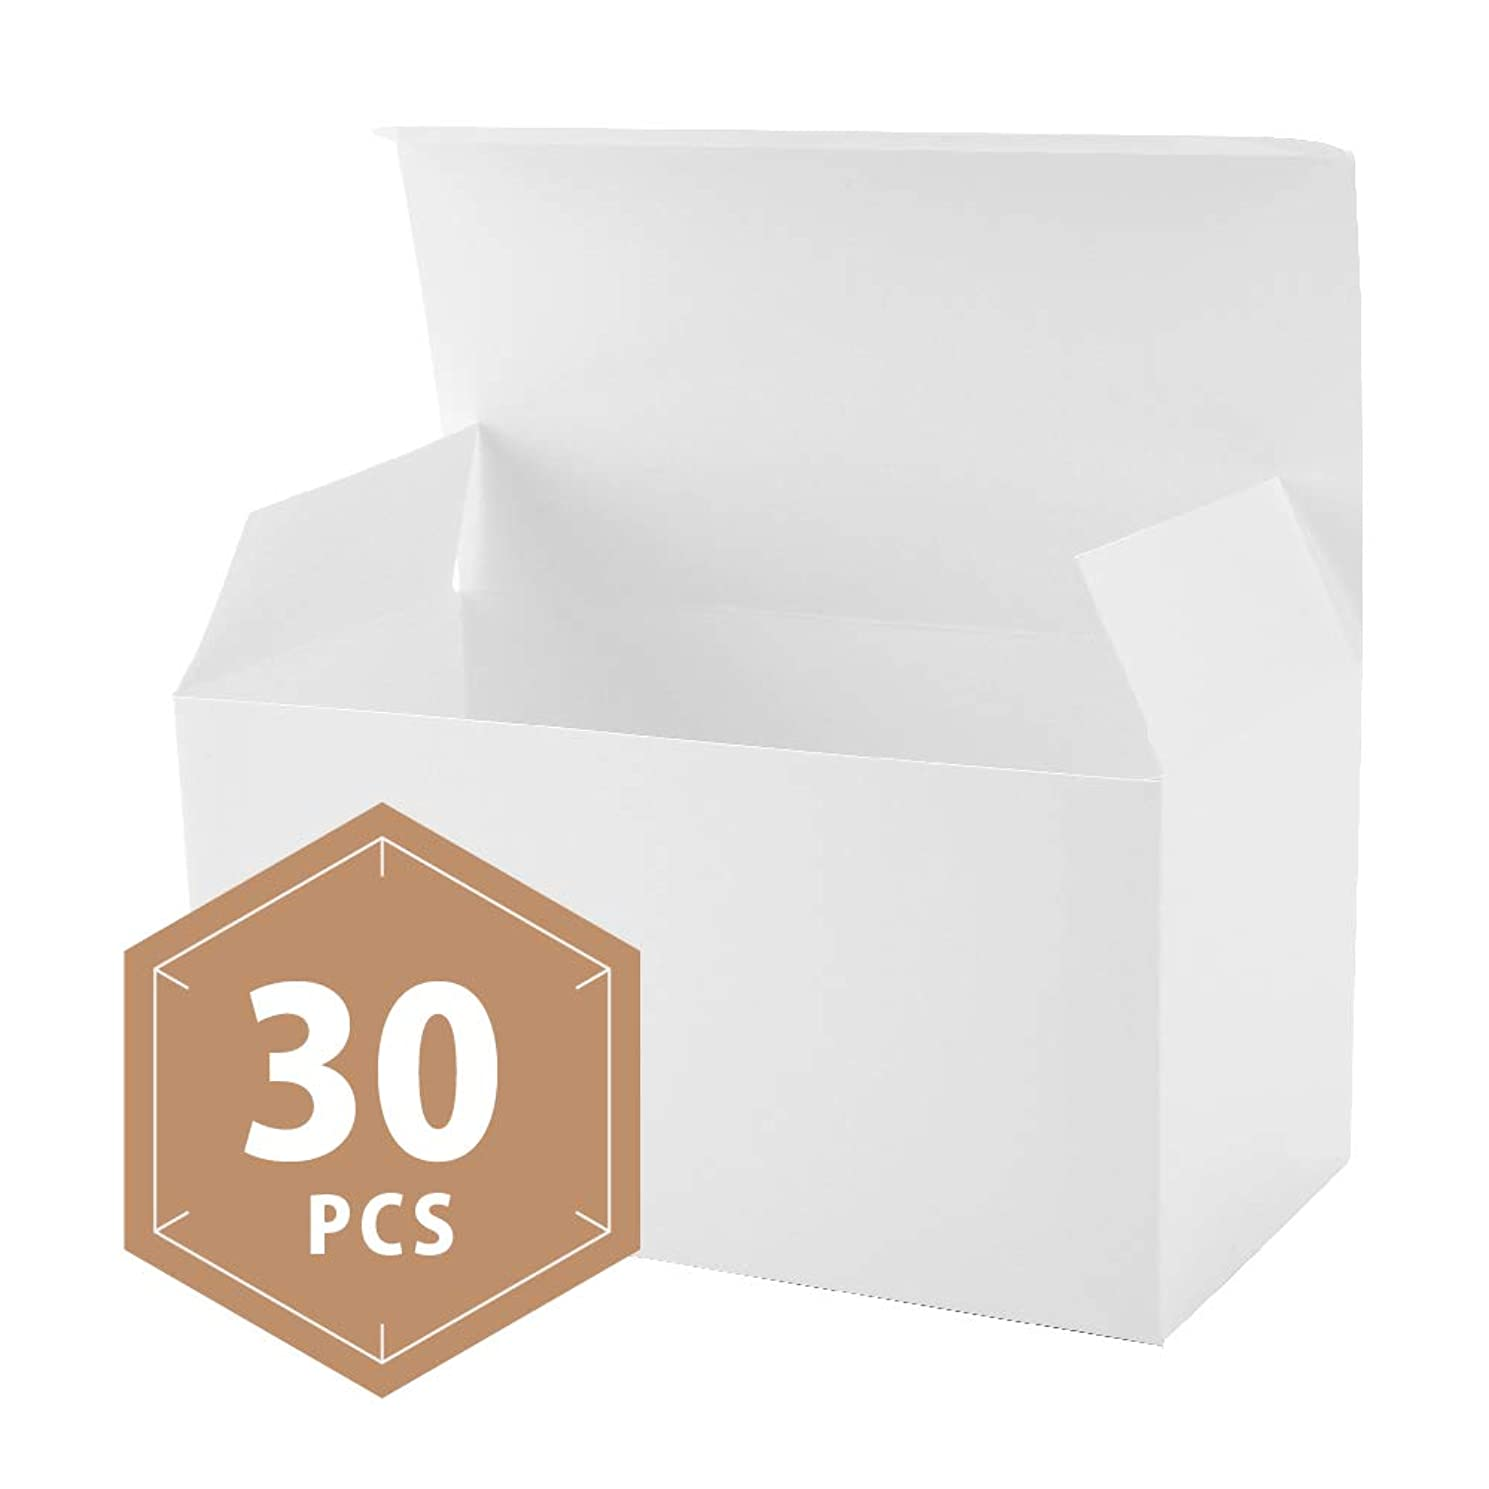 PACKHOME 30 White Gift Boxes with Lids 9x4.5x4.5 Inches Paper Gift Box for Wedding,Gift,Party,Recycled Paper